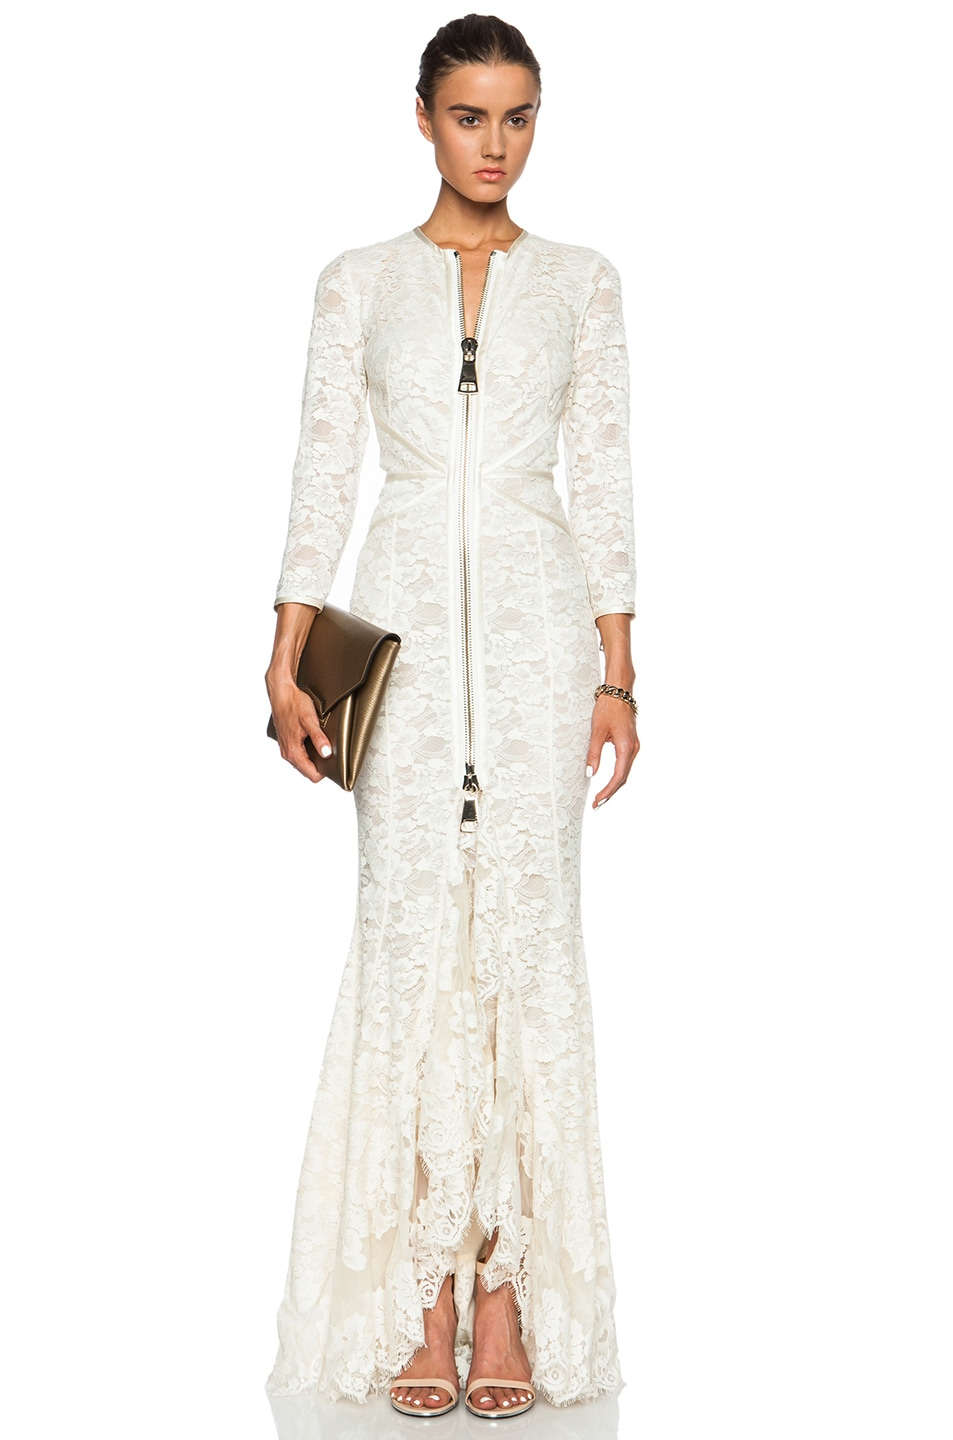 Givenchy Zip Front Lace Gown in Cream | FWRD